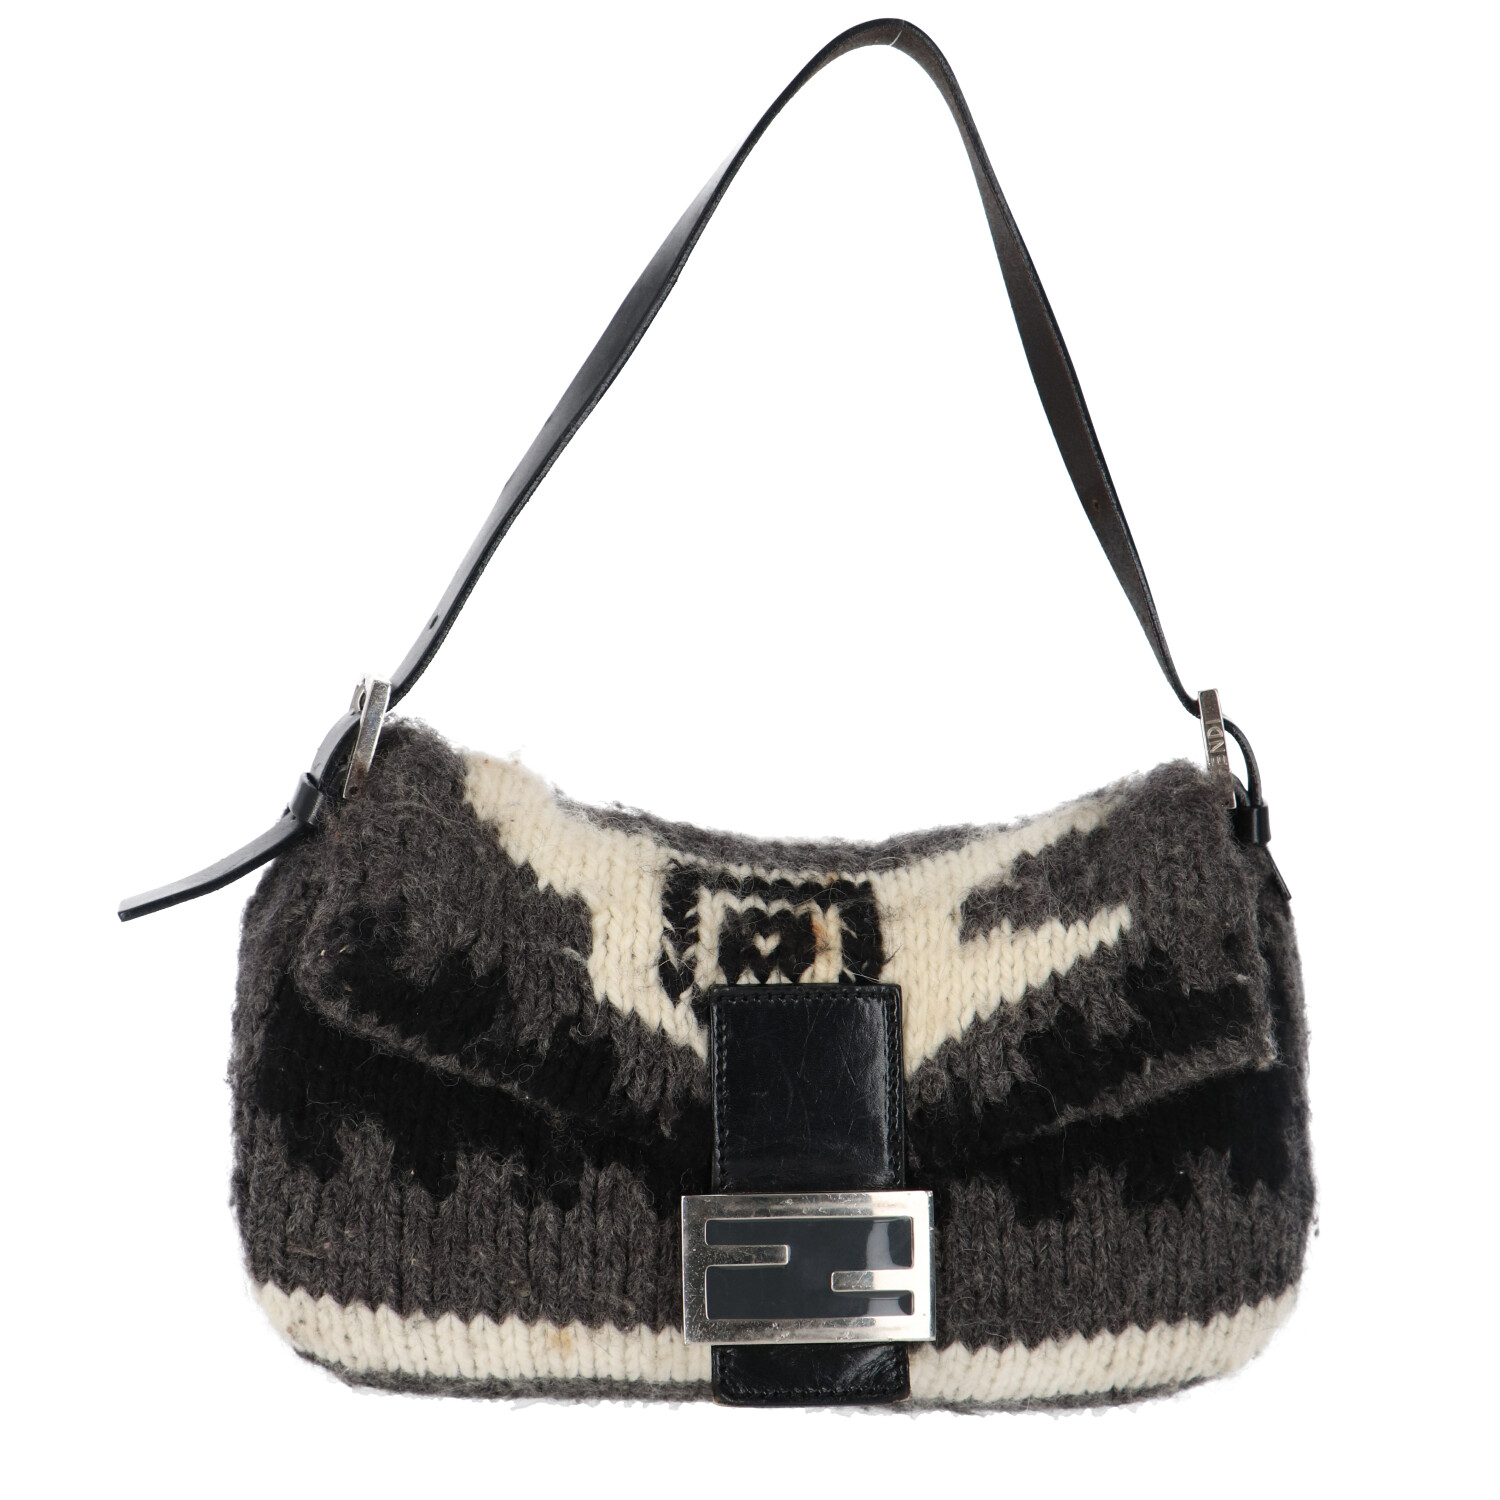 Fendi Grey Knit Baguette